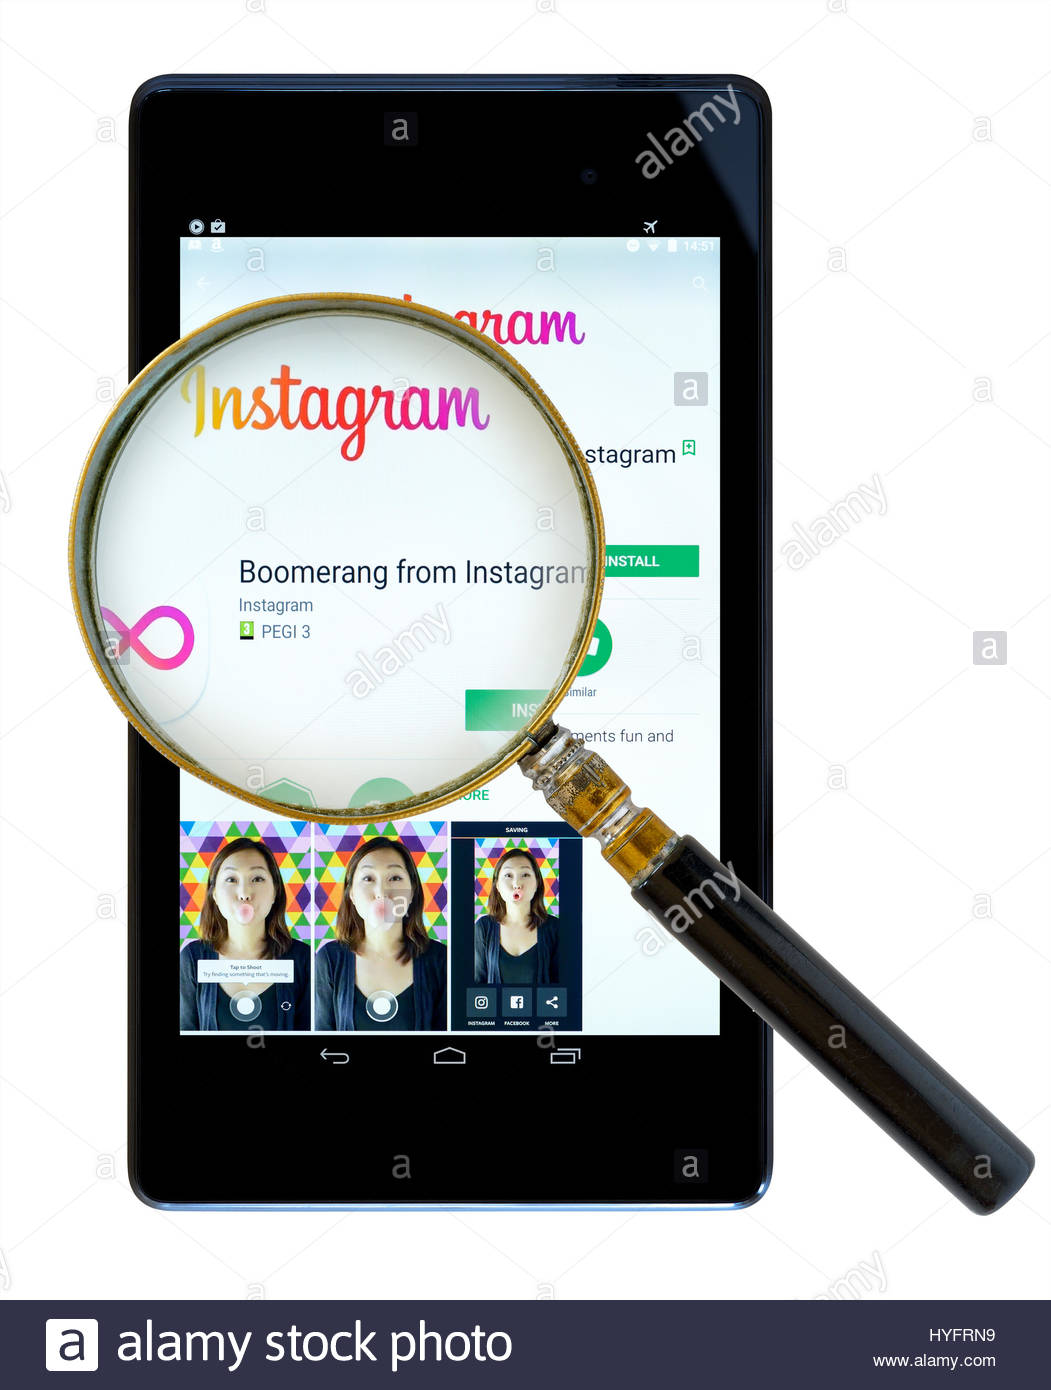 instagram app for android tablet